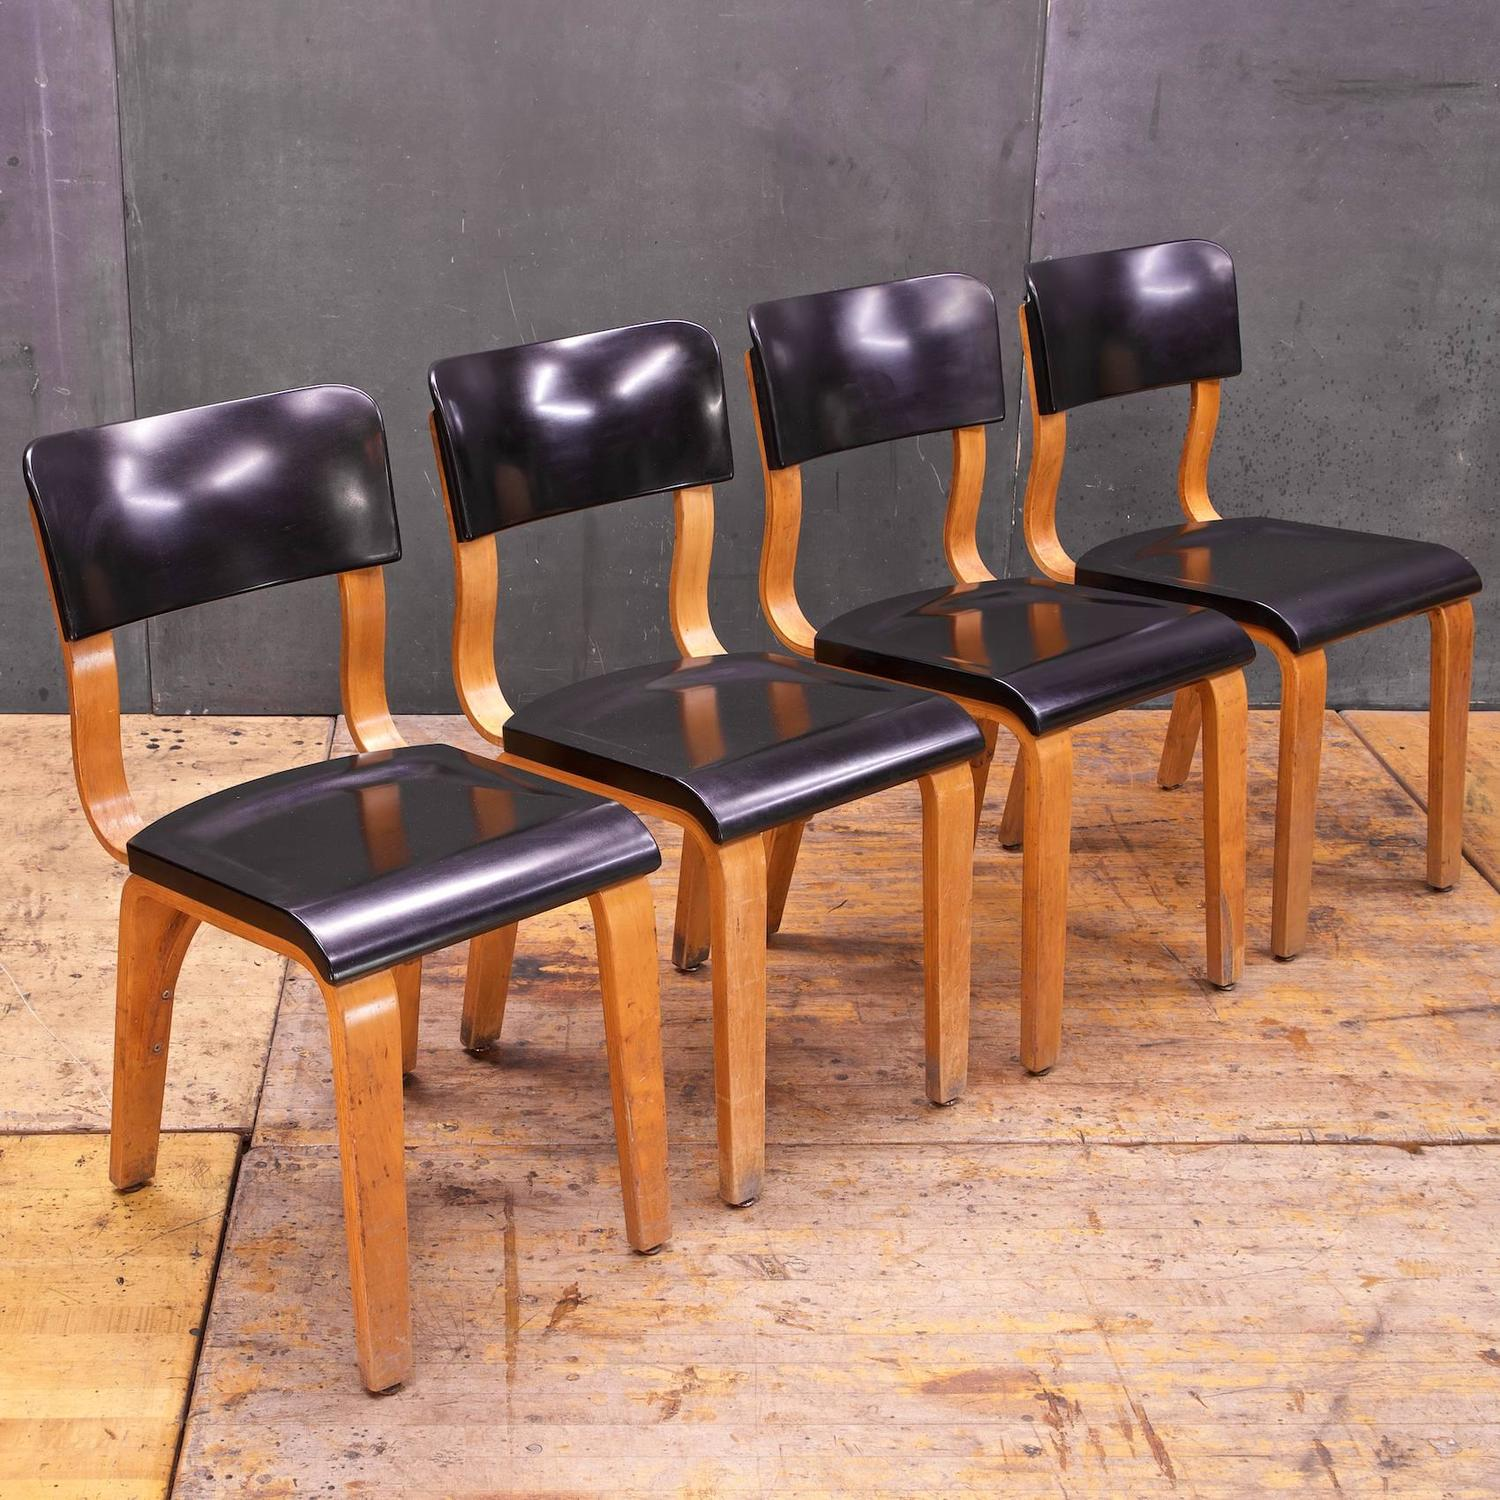 bentwood dining chair pool lawn chairs rare bakelite and thonet at 1stdibs